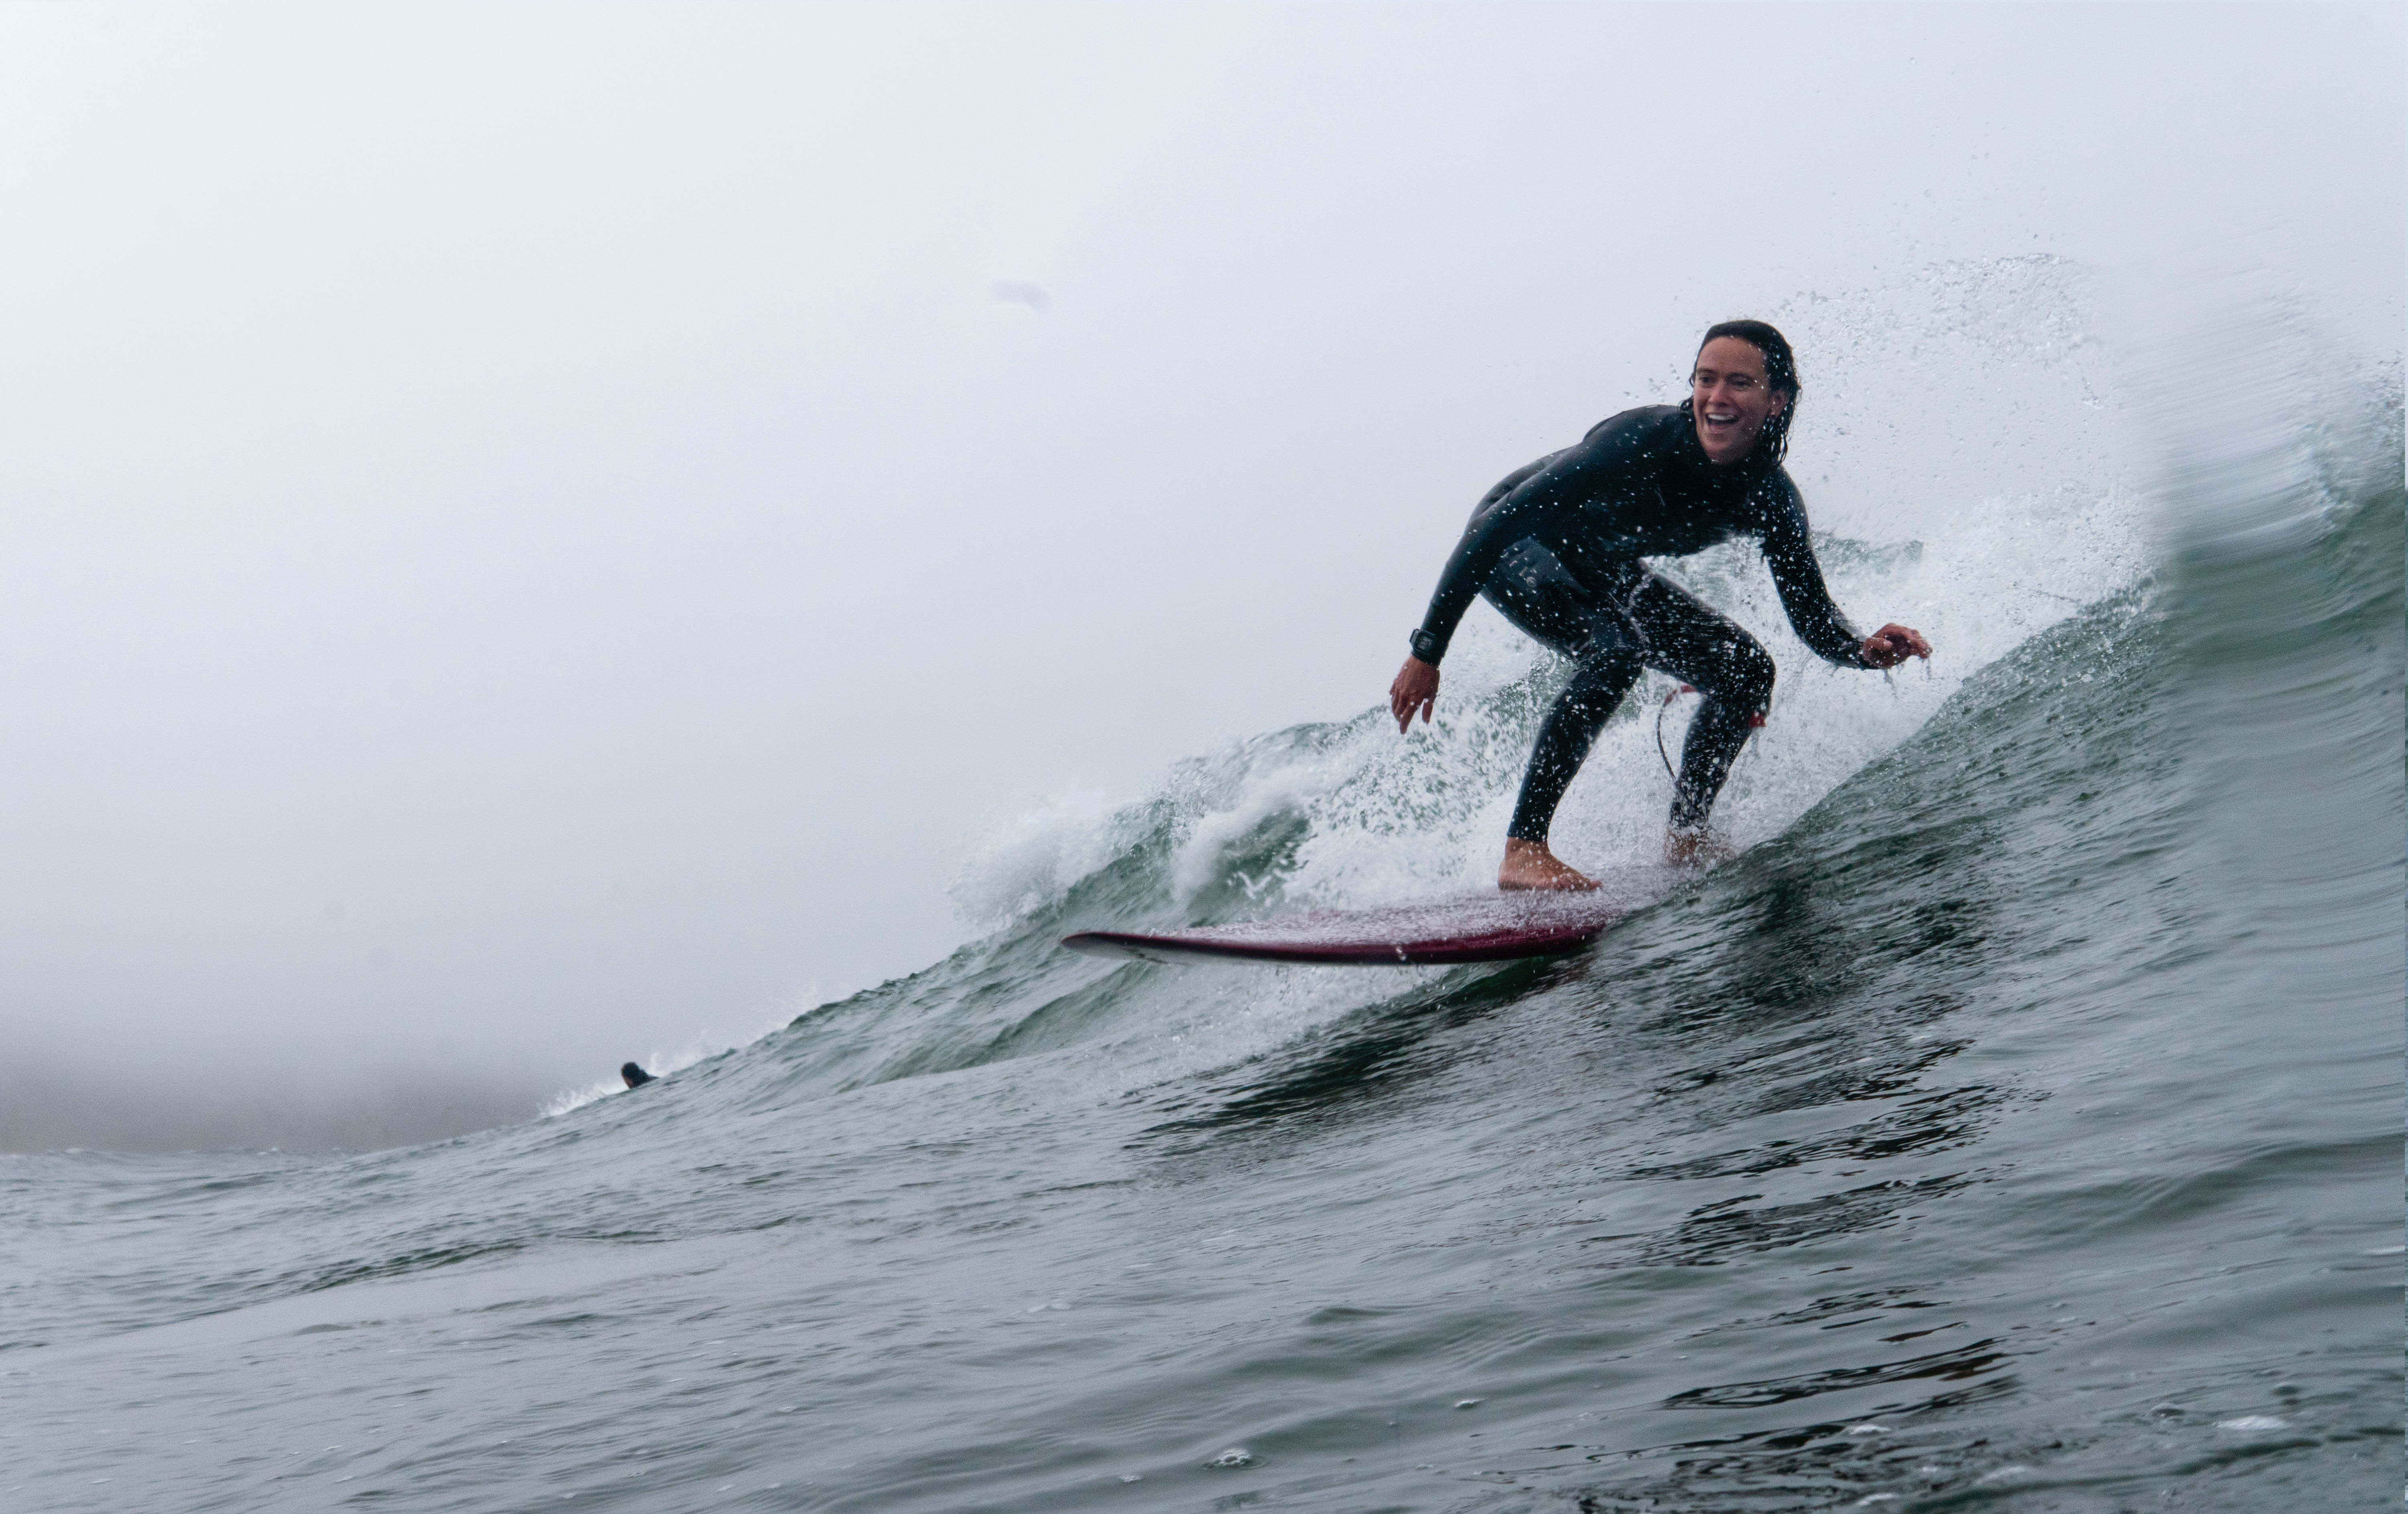 Active Surf California Photo by Hoang M Nguyen on Unsplash